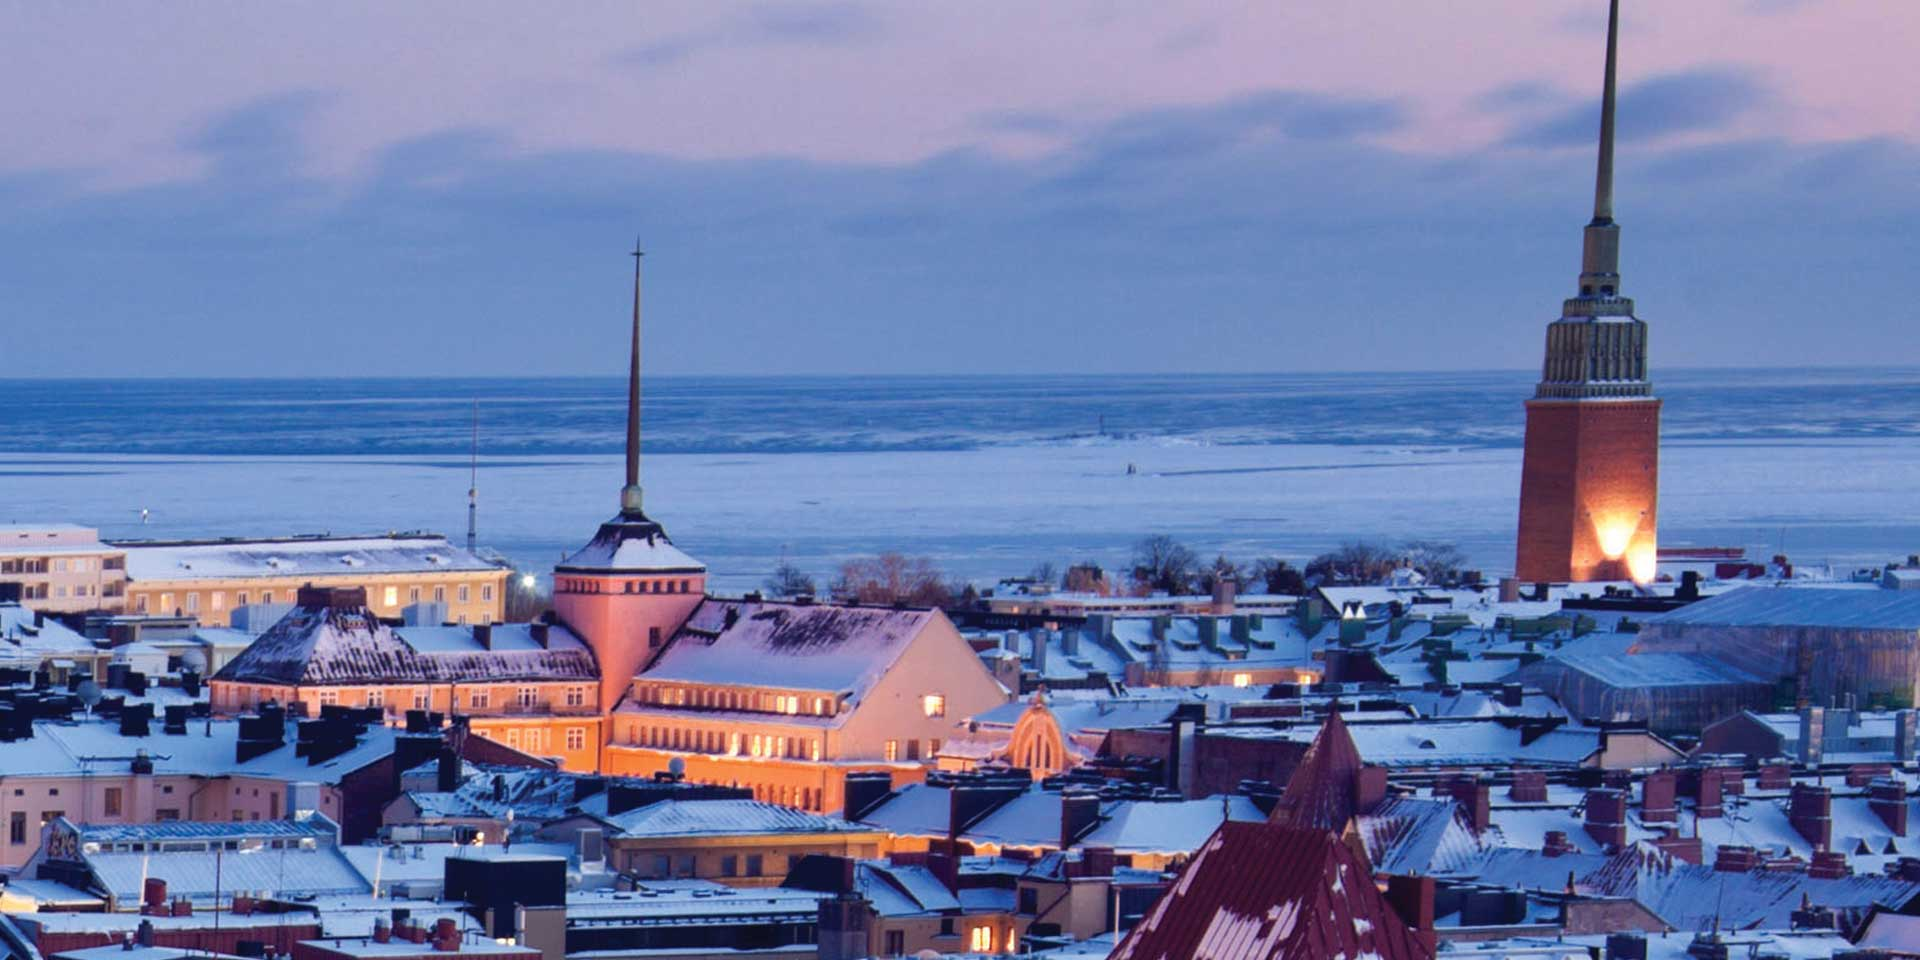 Finland White Case LLP International Law Firm Global Law Practice